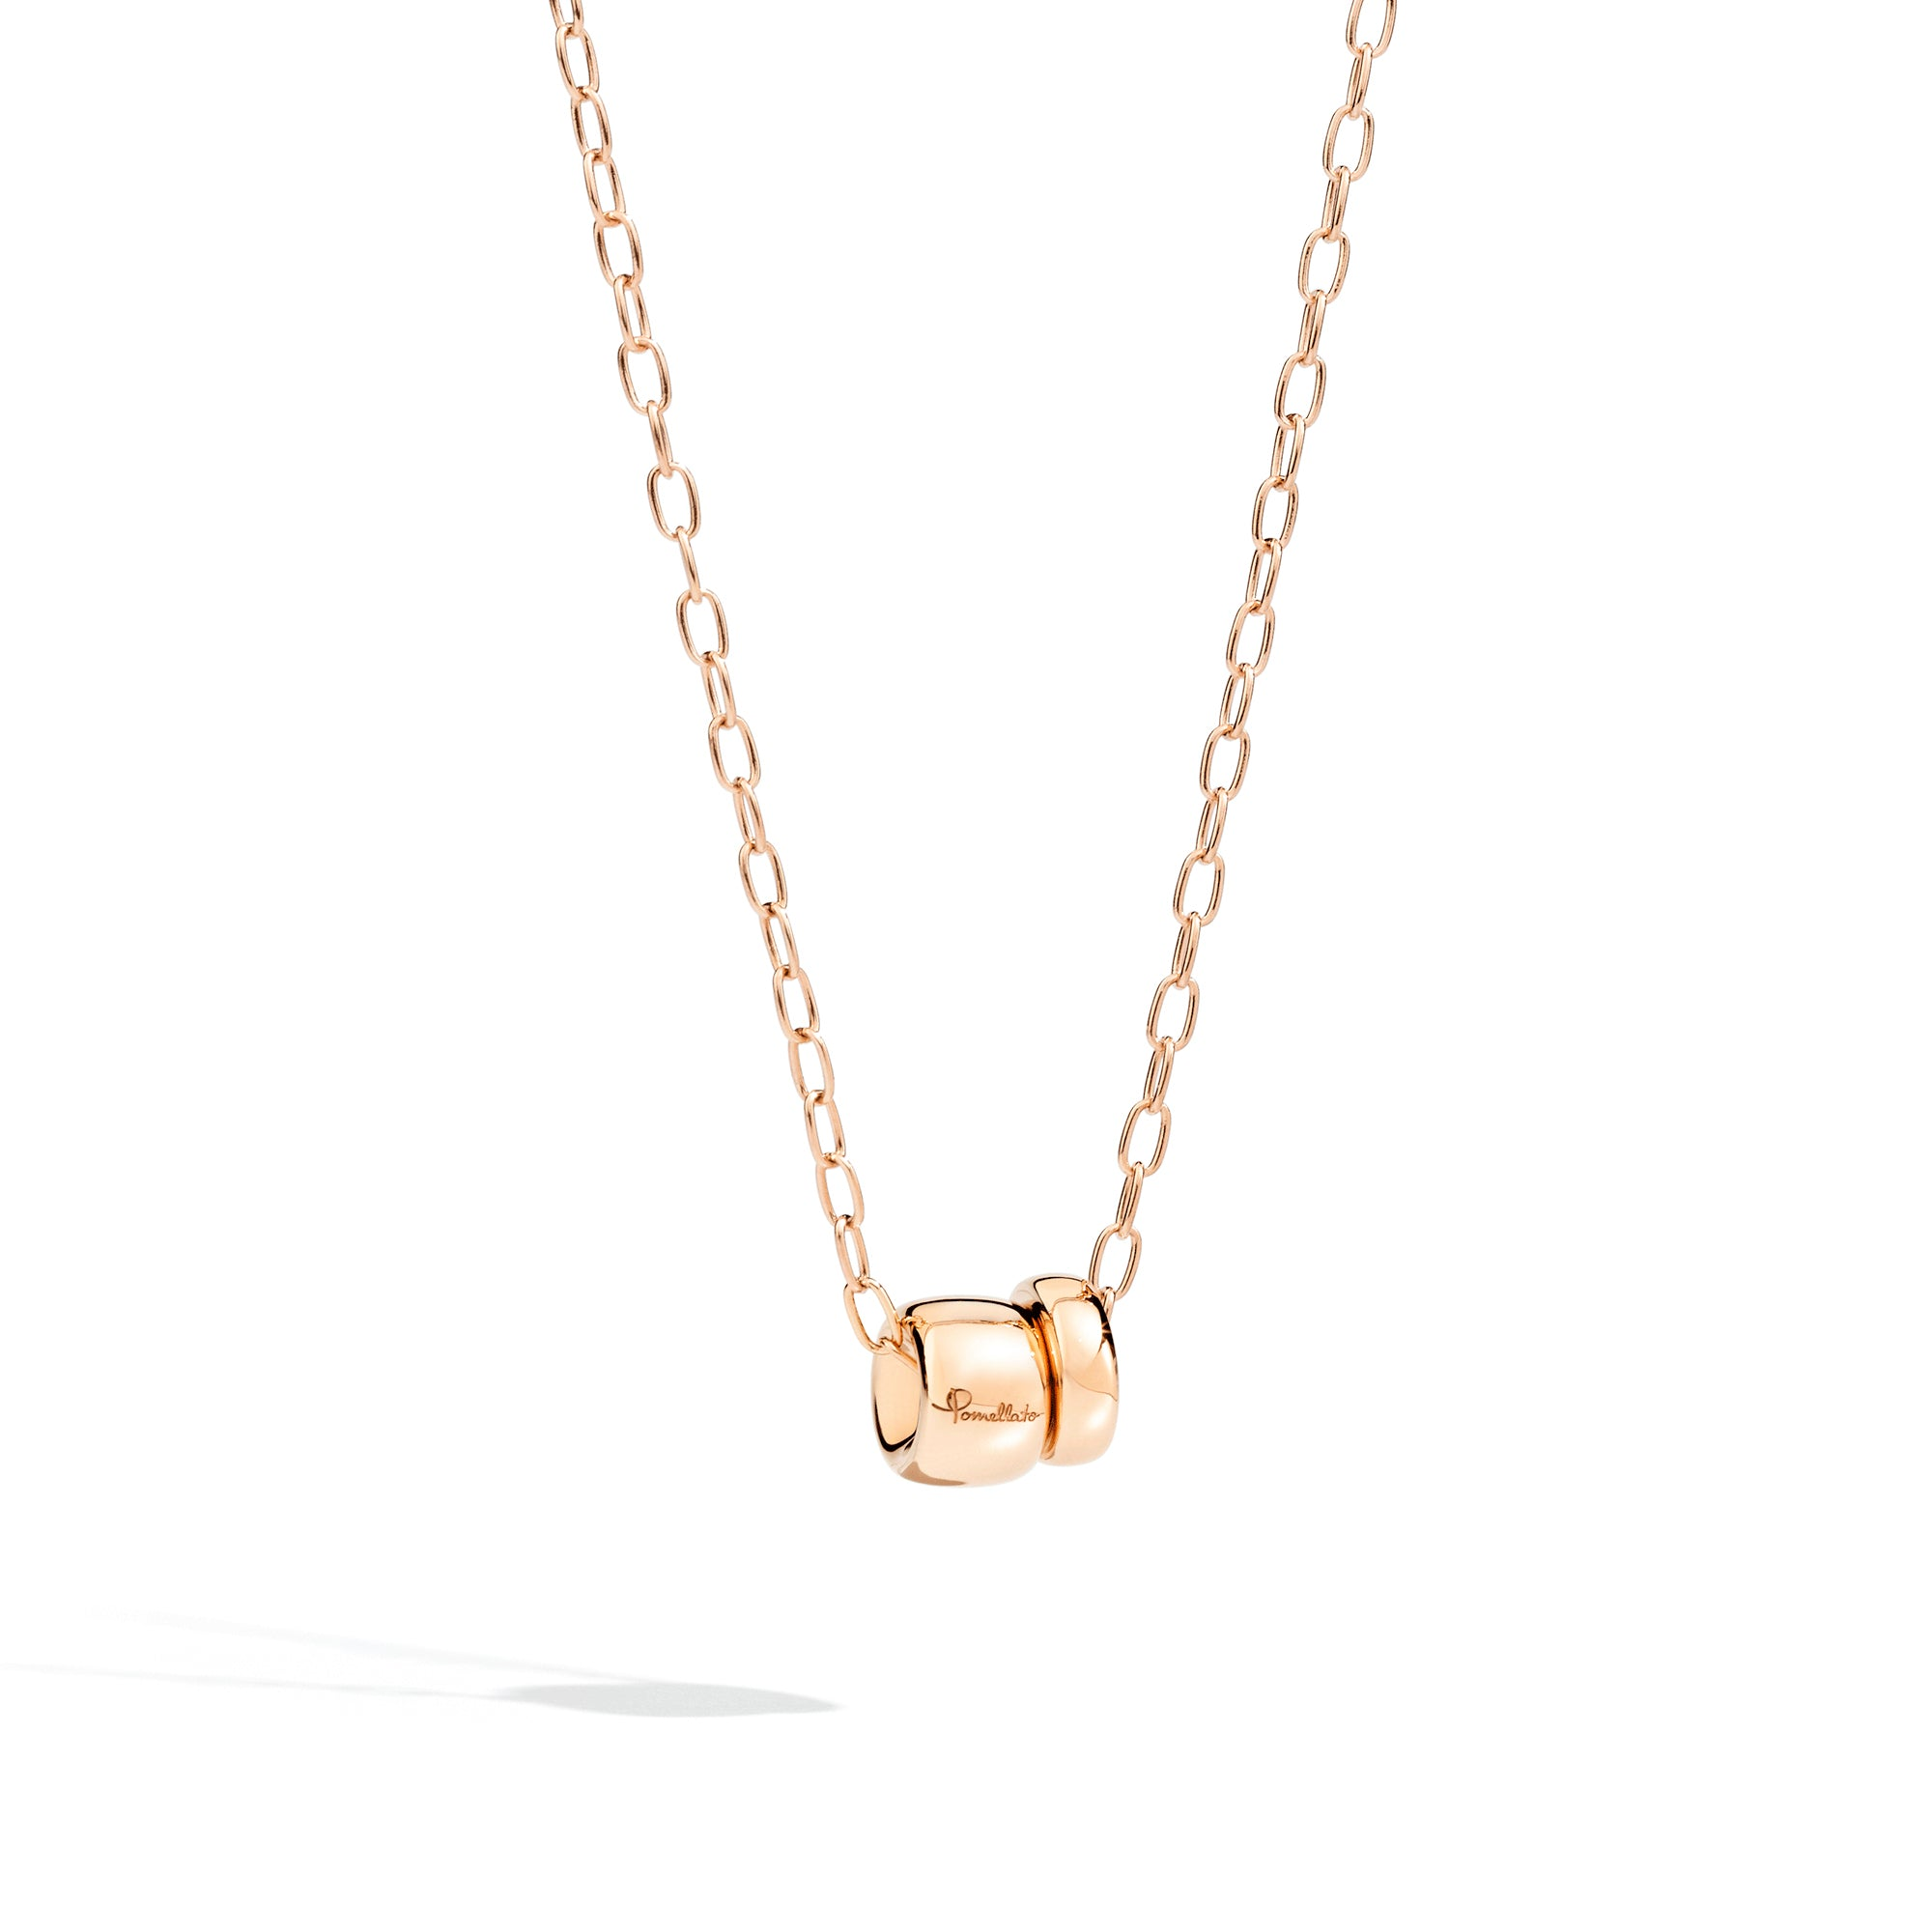 Iconica Necklace with Chain in 18k Rose Gold - Orsini Jewellers NZ